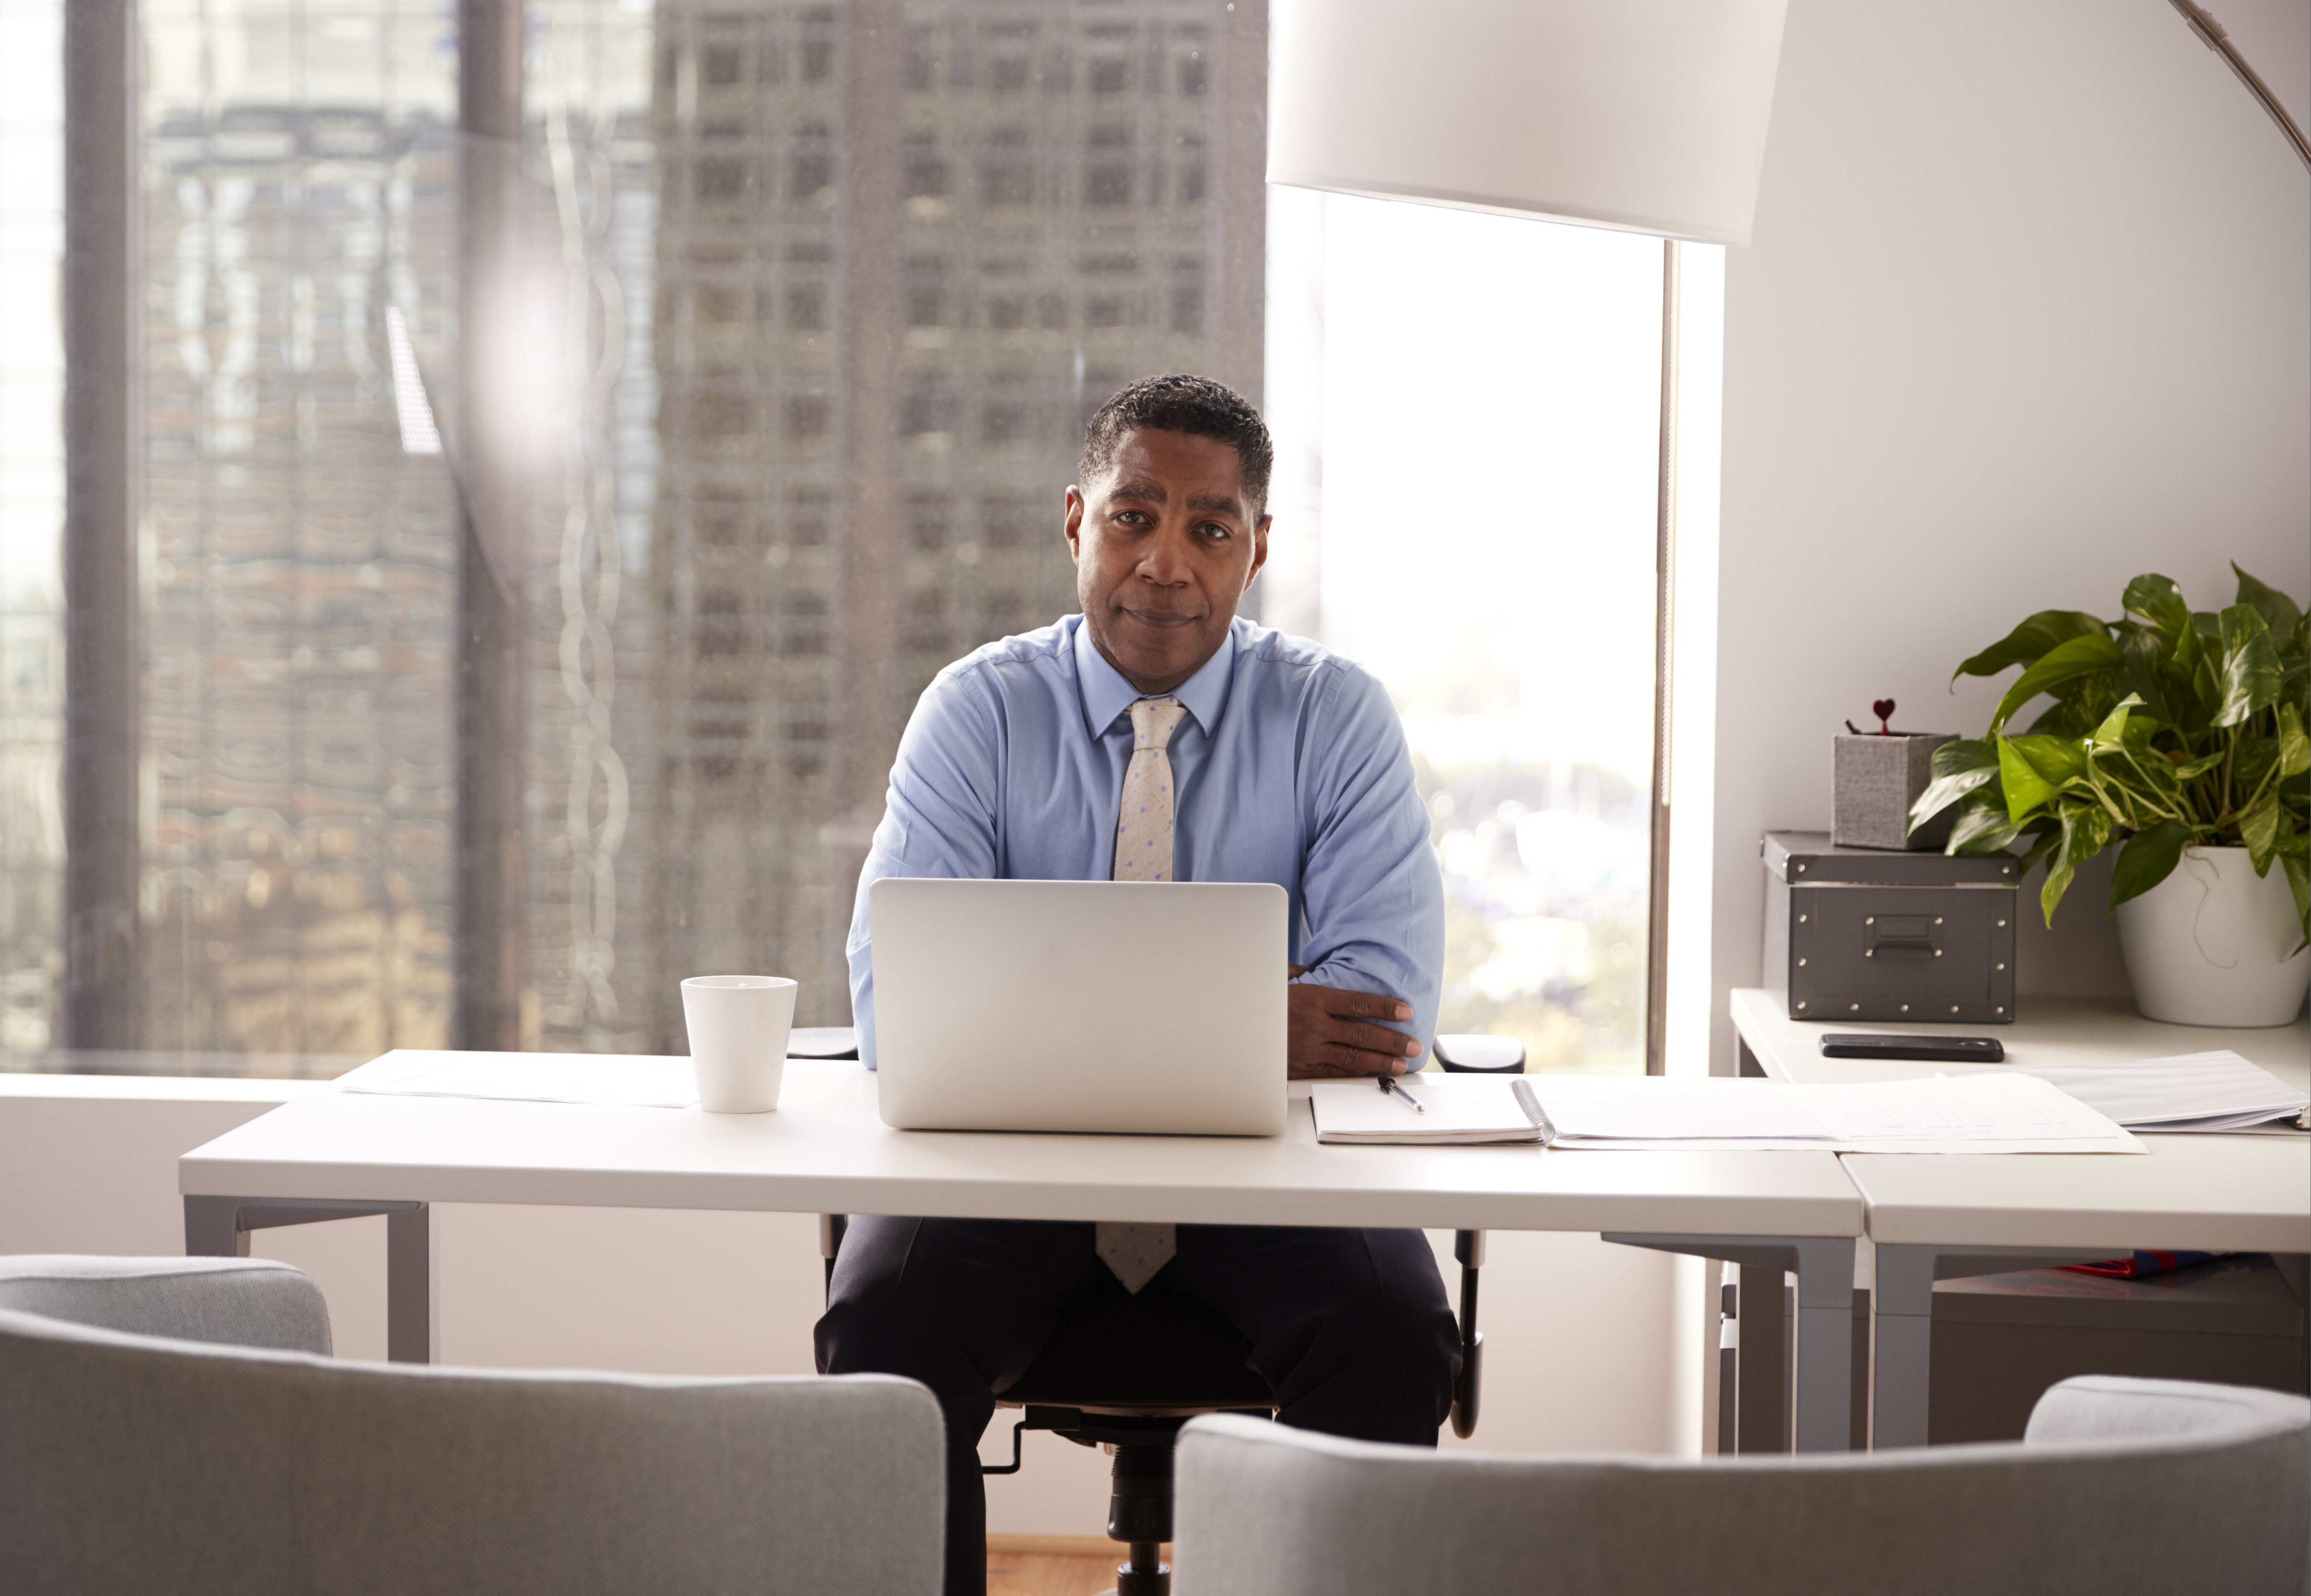 Portrait Of Male Financial Advisor In Modern Office Sitting At Desk Working On Laptop – Tributus